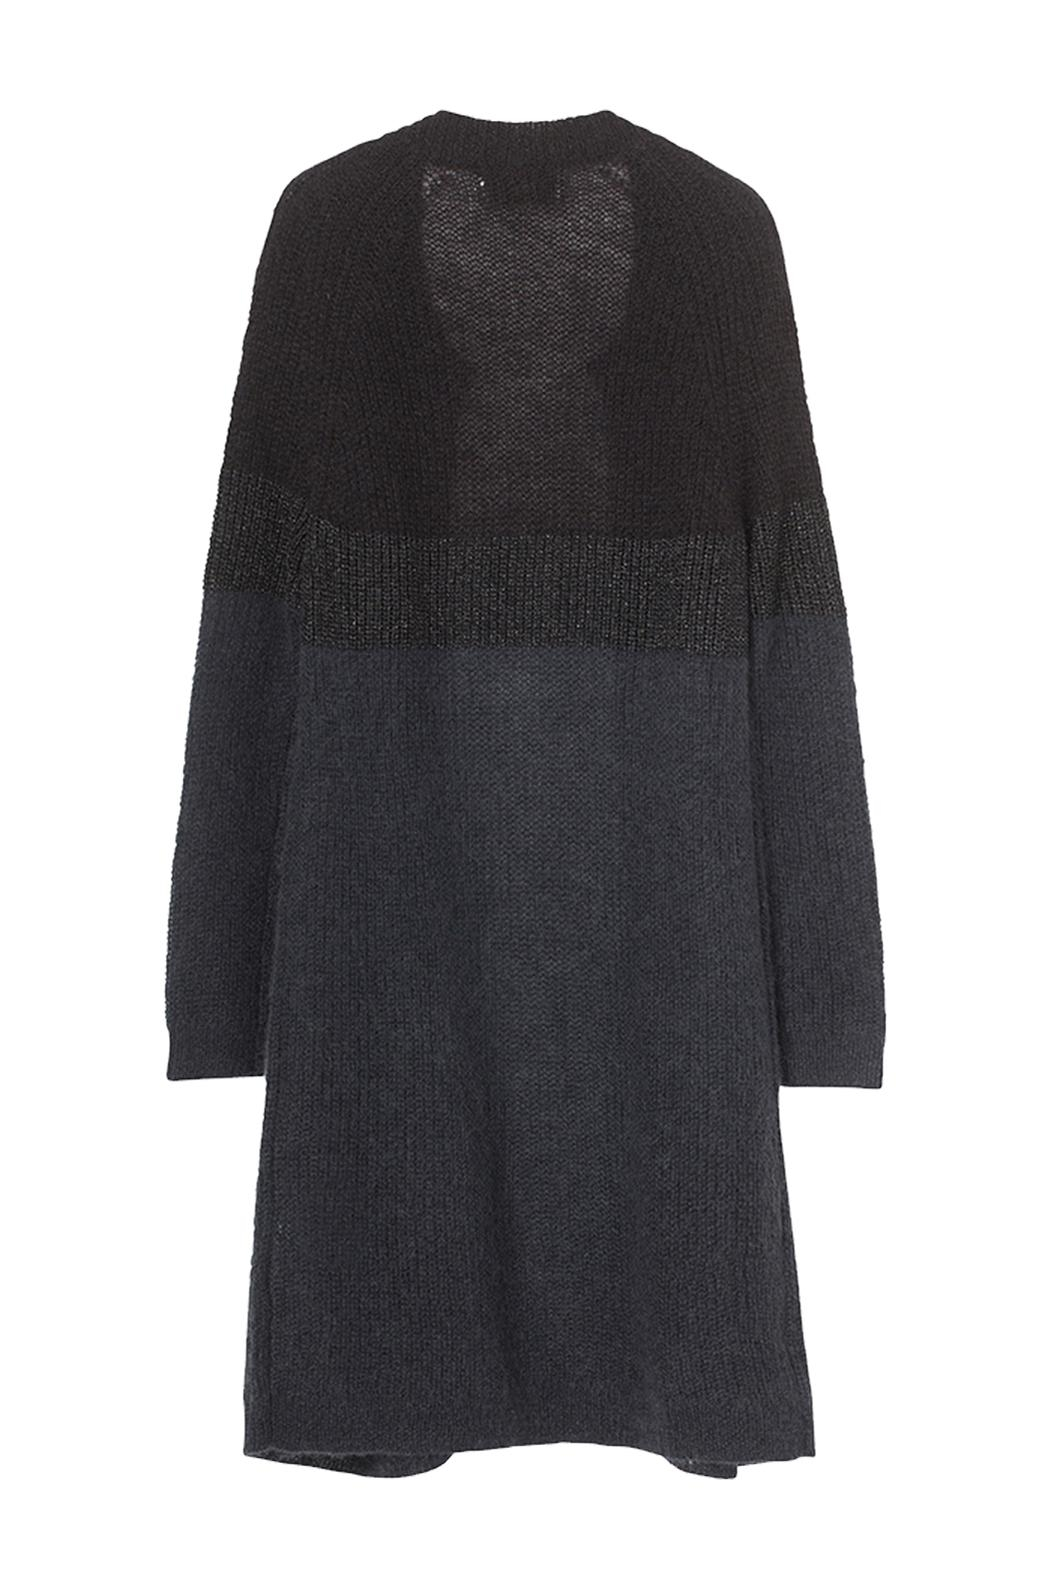 Munthe Soft Mohair Cardigan from Netherlands by The Outside ...